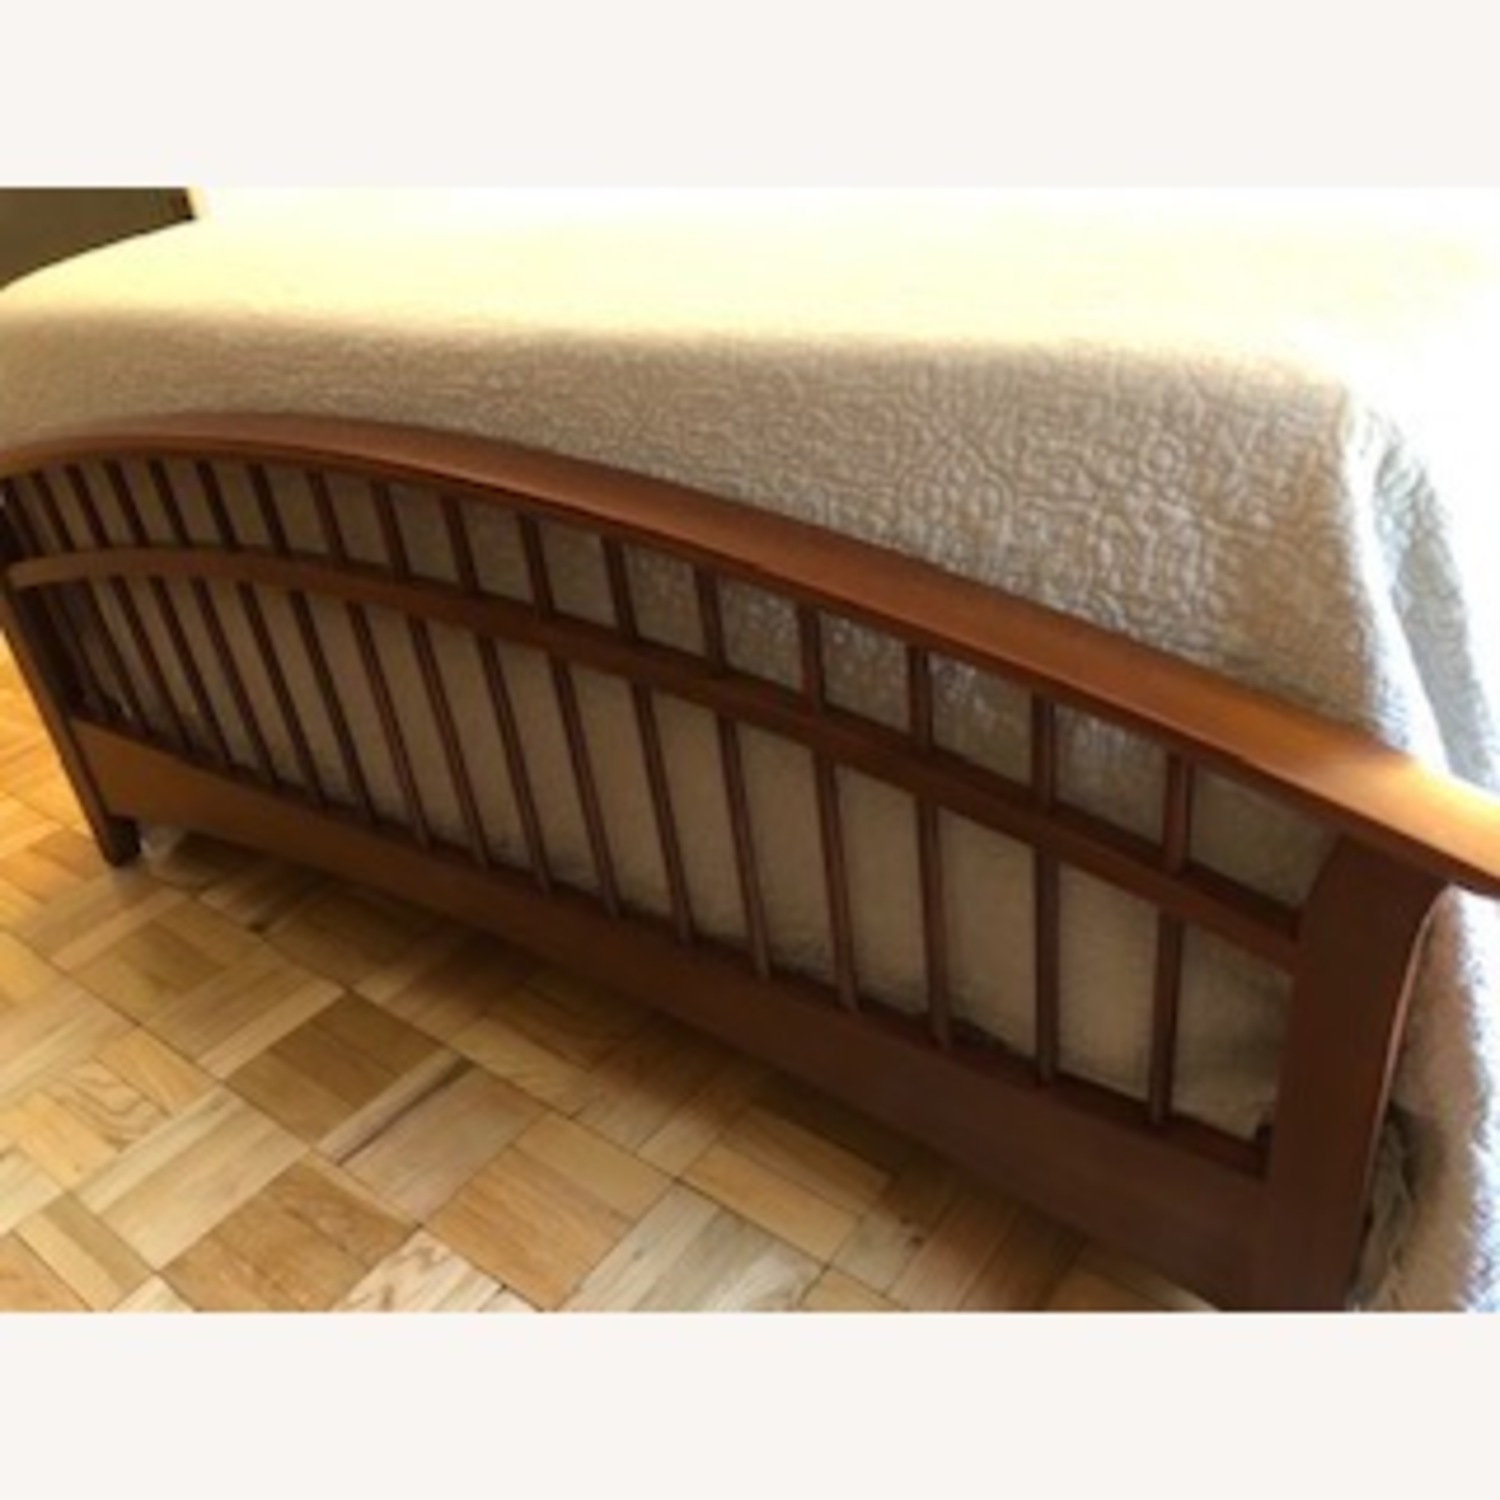 Thomasville Furniture Industries Spindle Head and Footboard - image-2